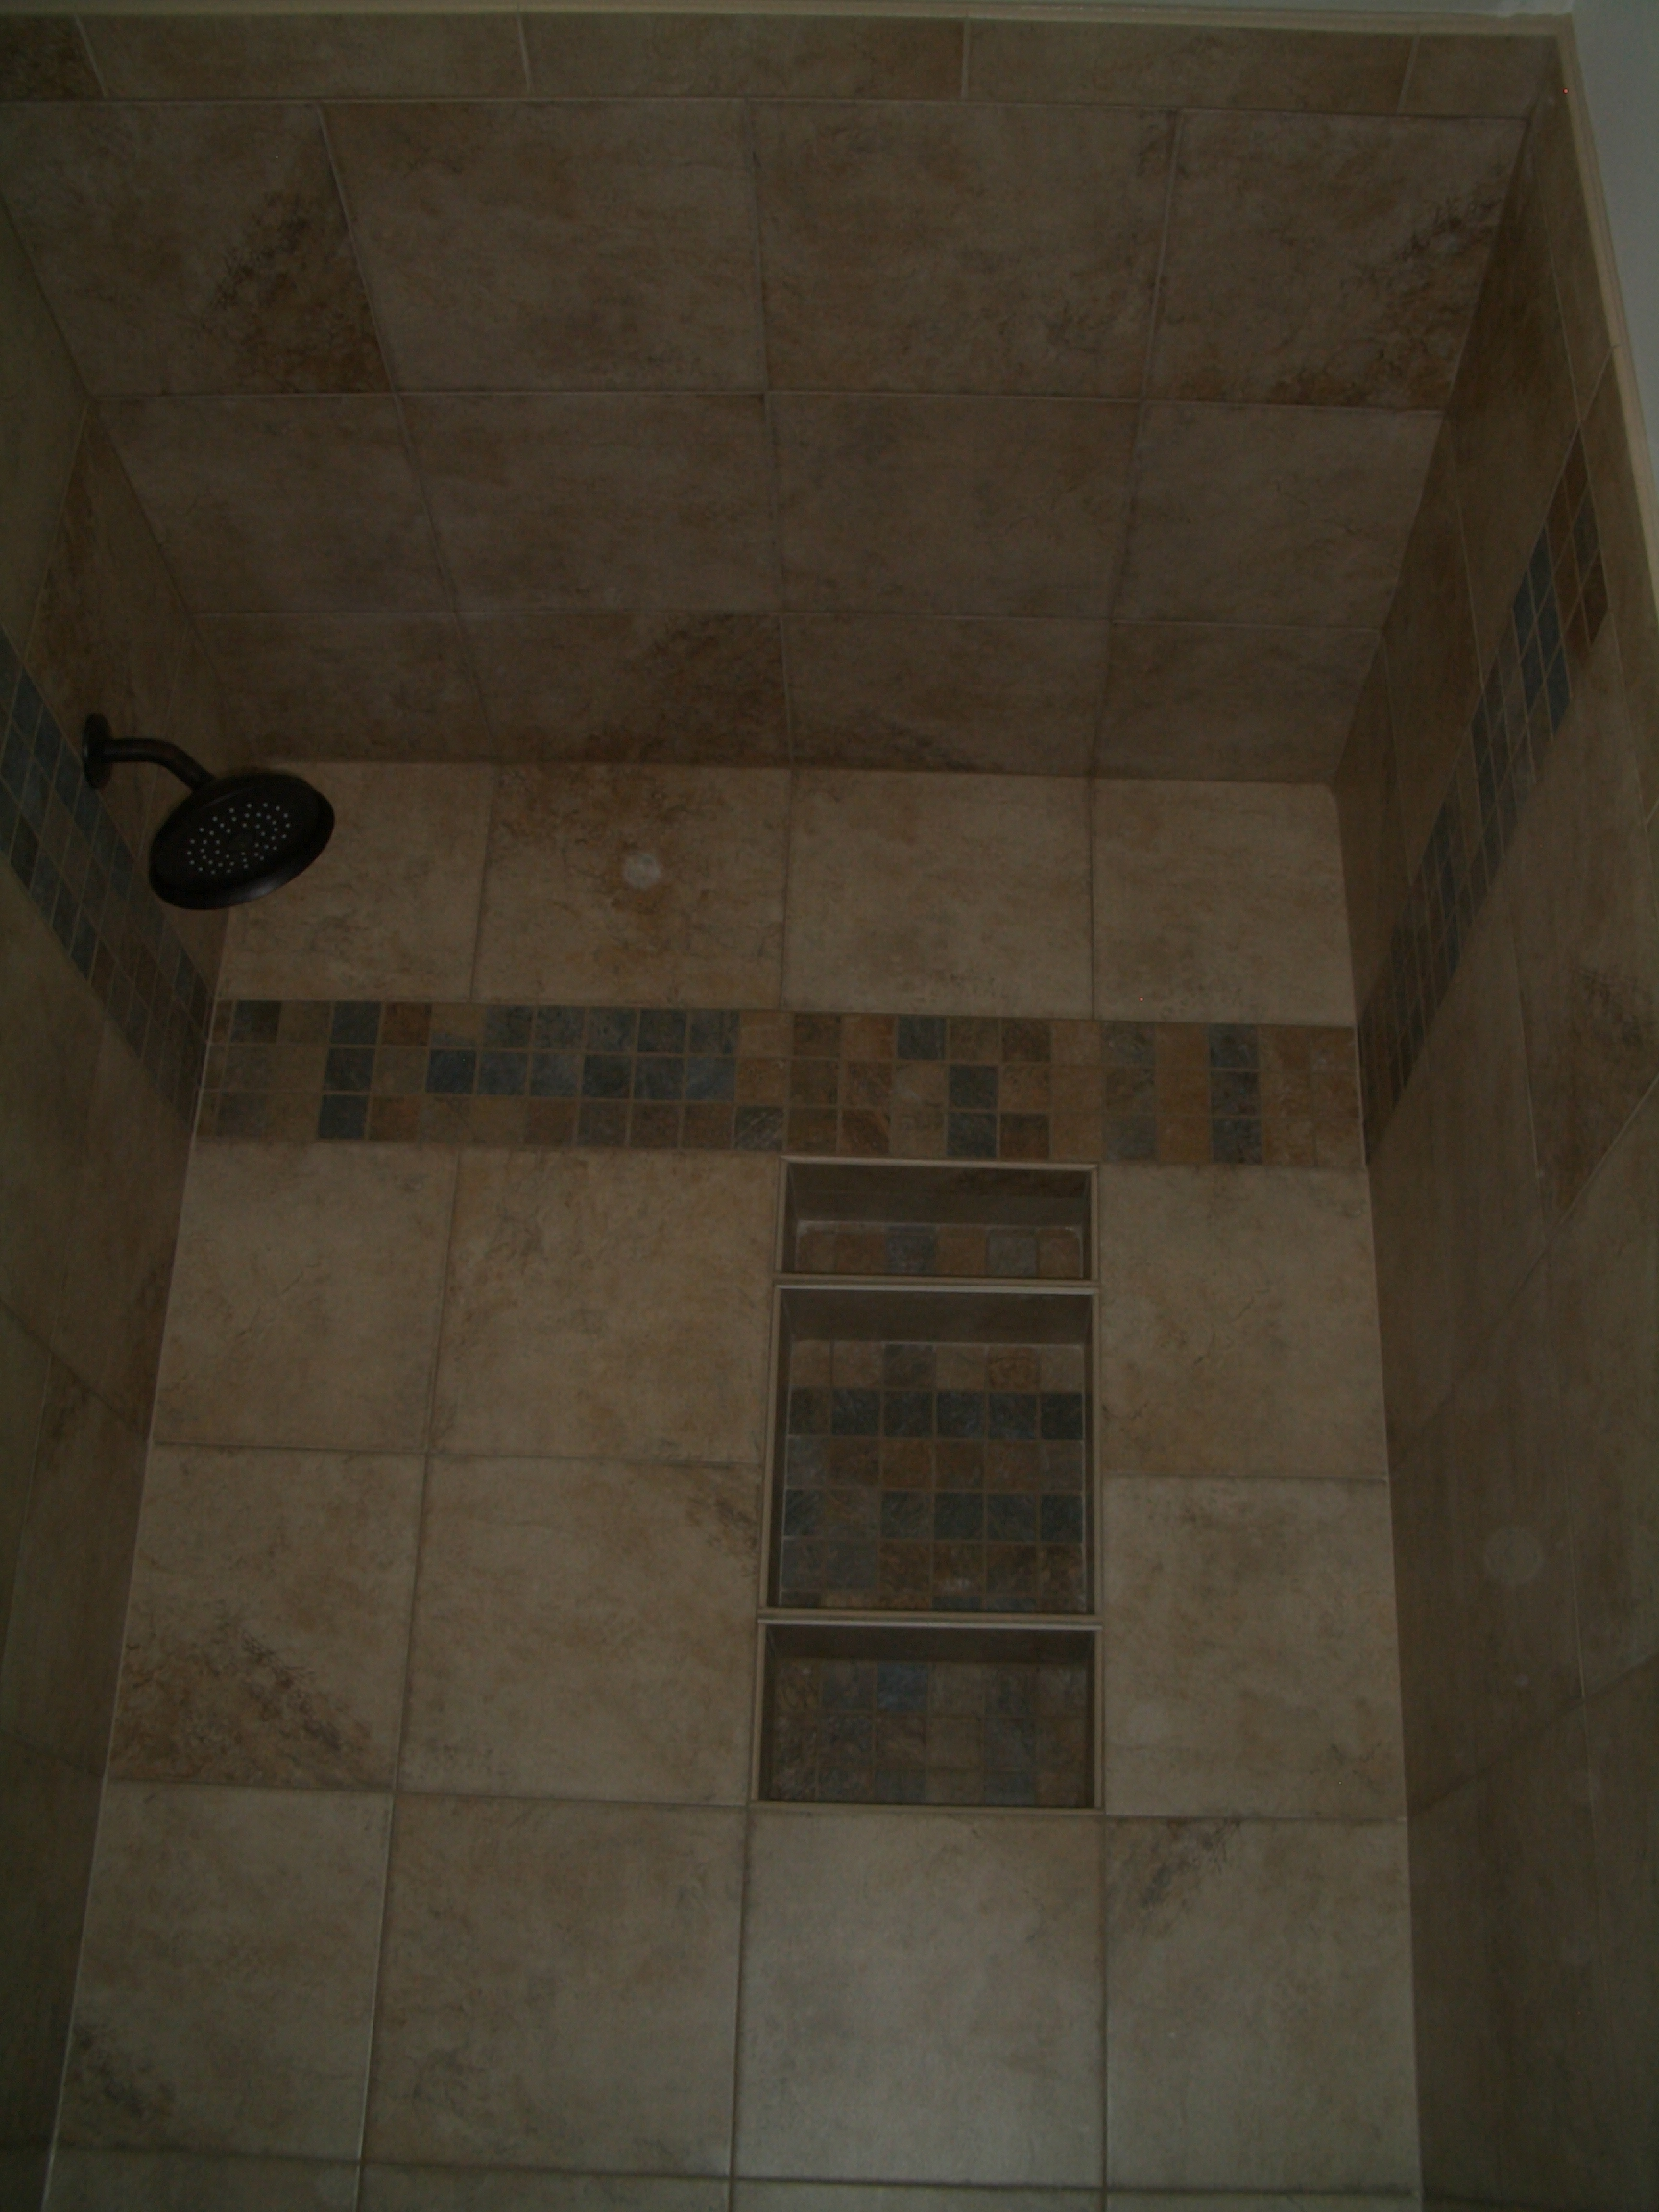 How to install tile on a shower ceiling Tile a shower